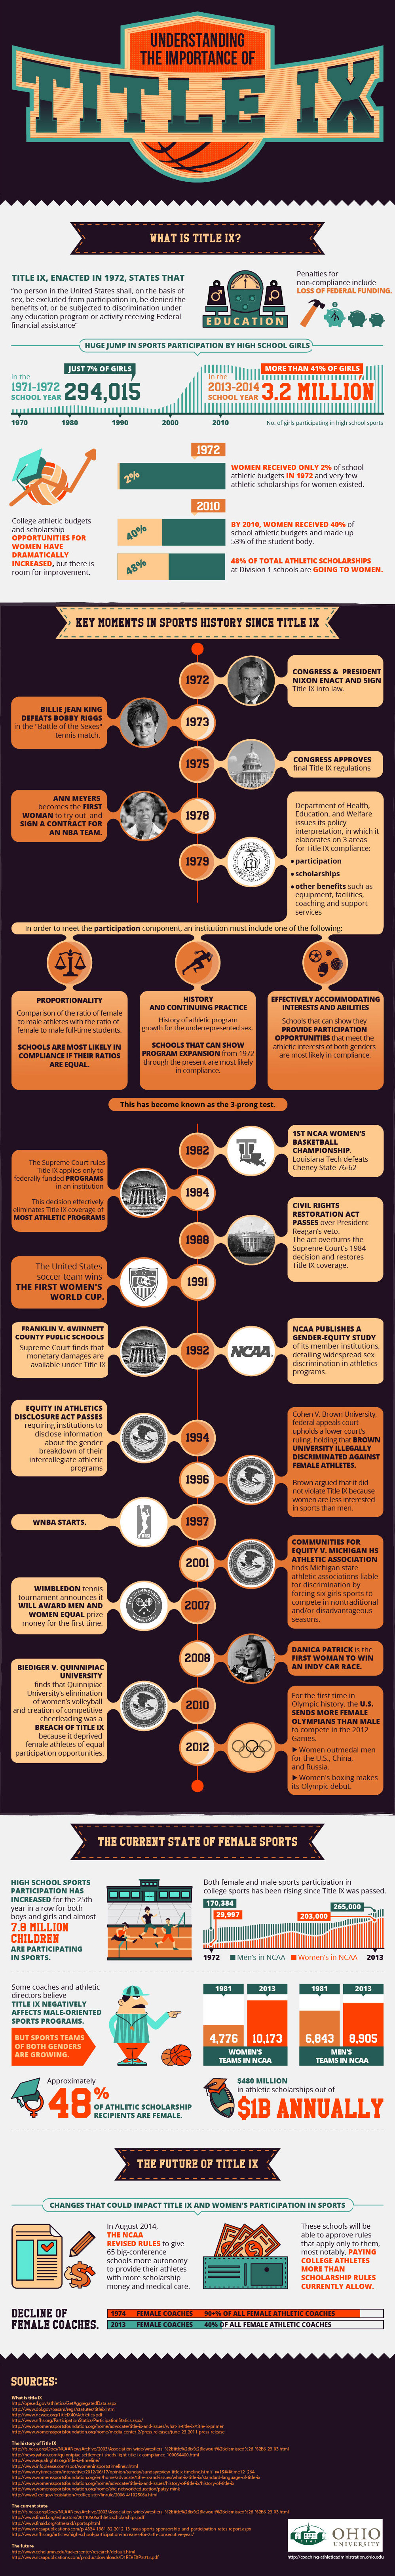 the impact of title ix 131 basketball and soccer can be directly traced to title ix and the increased opportunities for women in athletics the impact of title ix on women in sport.